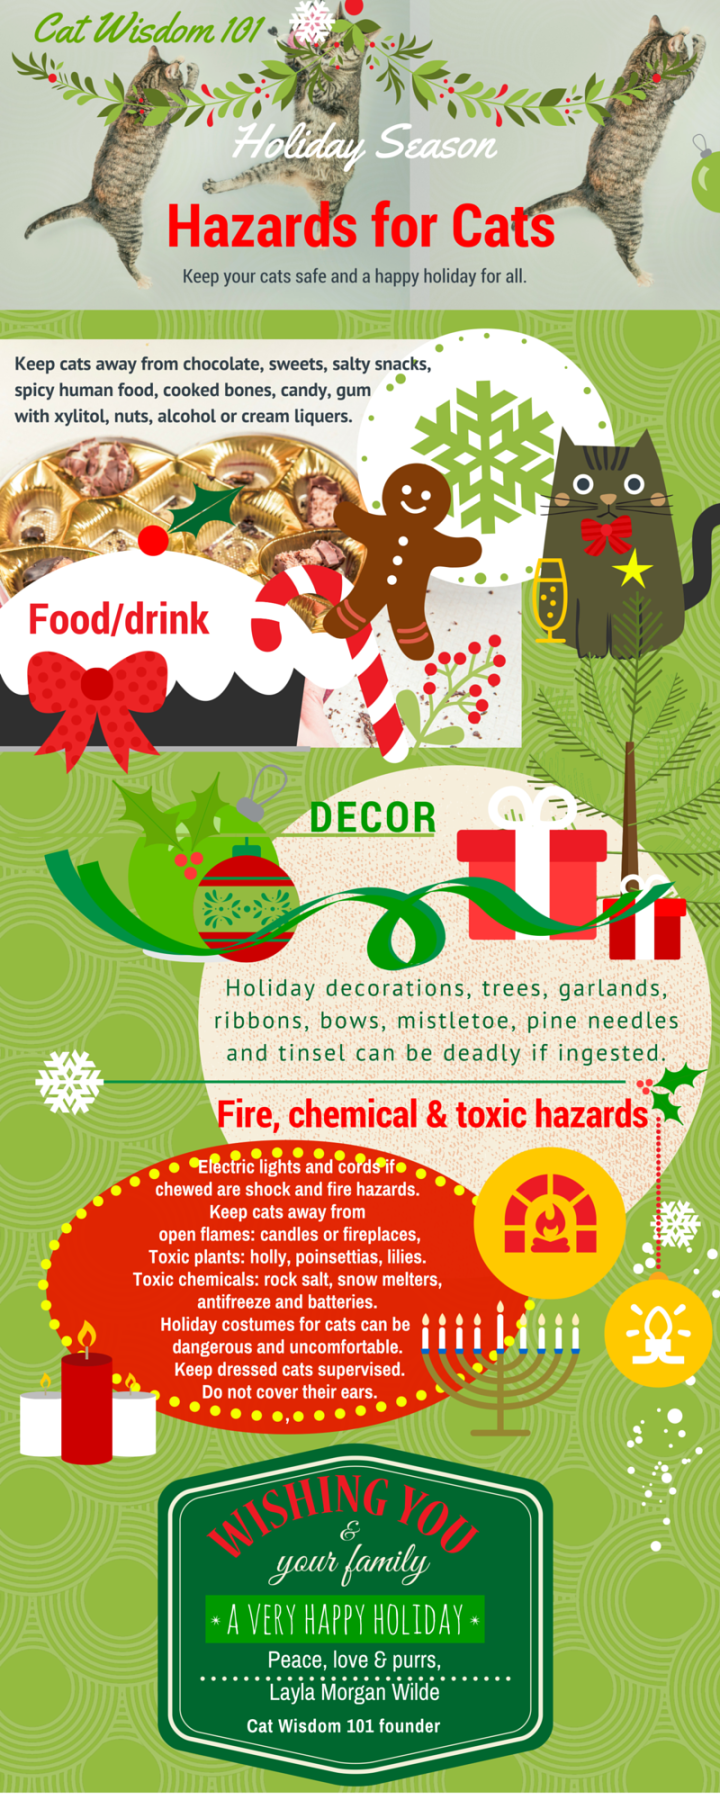 cat wisdom 101 holiday cat hazards infographic